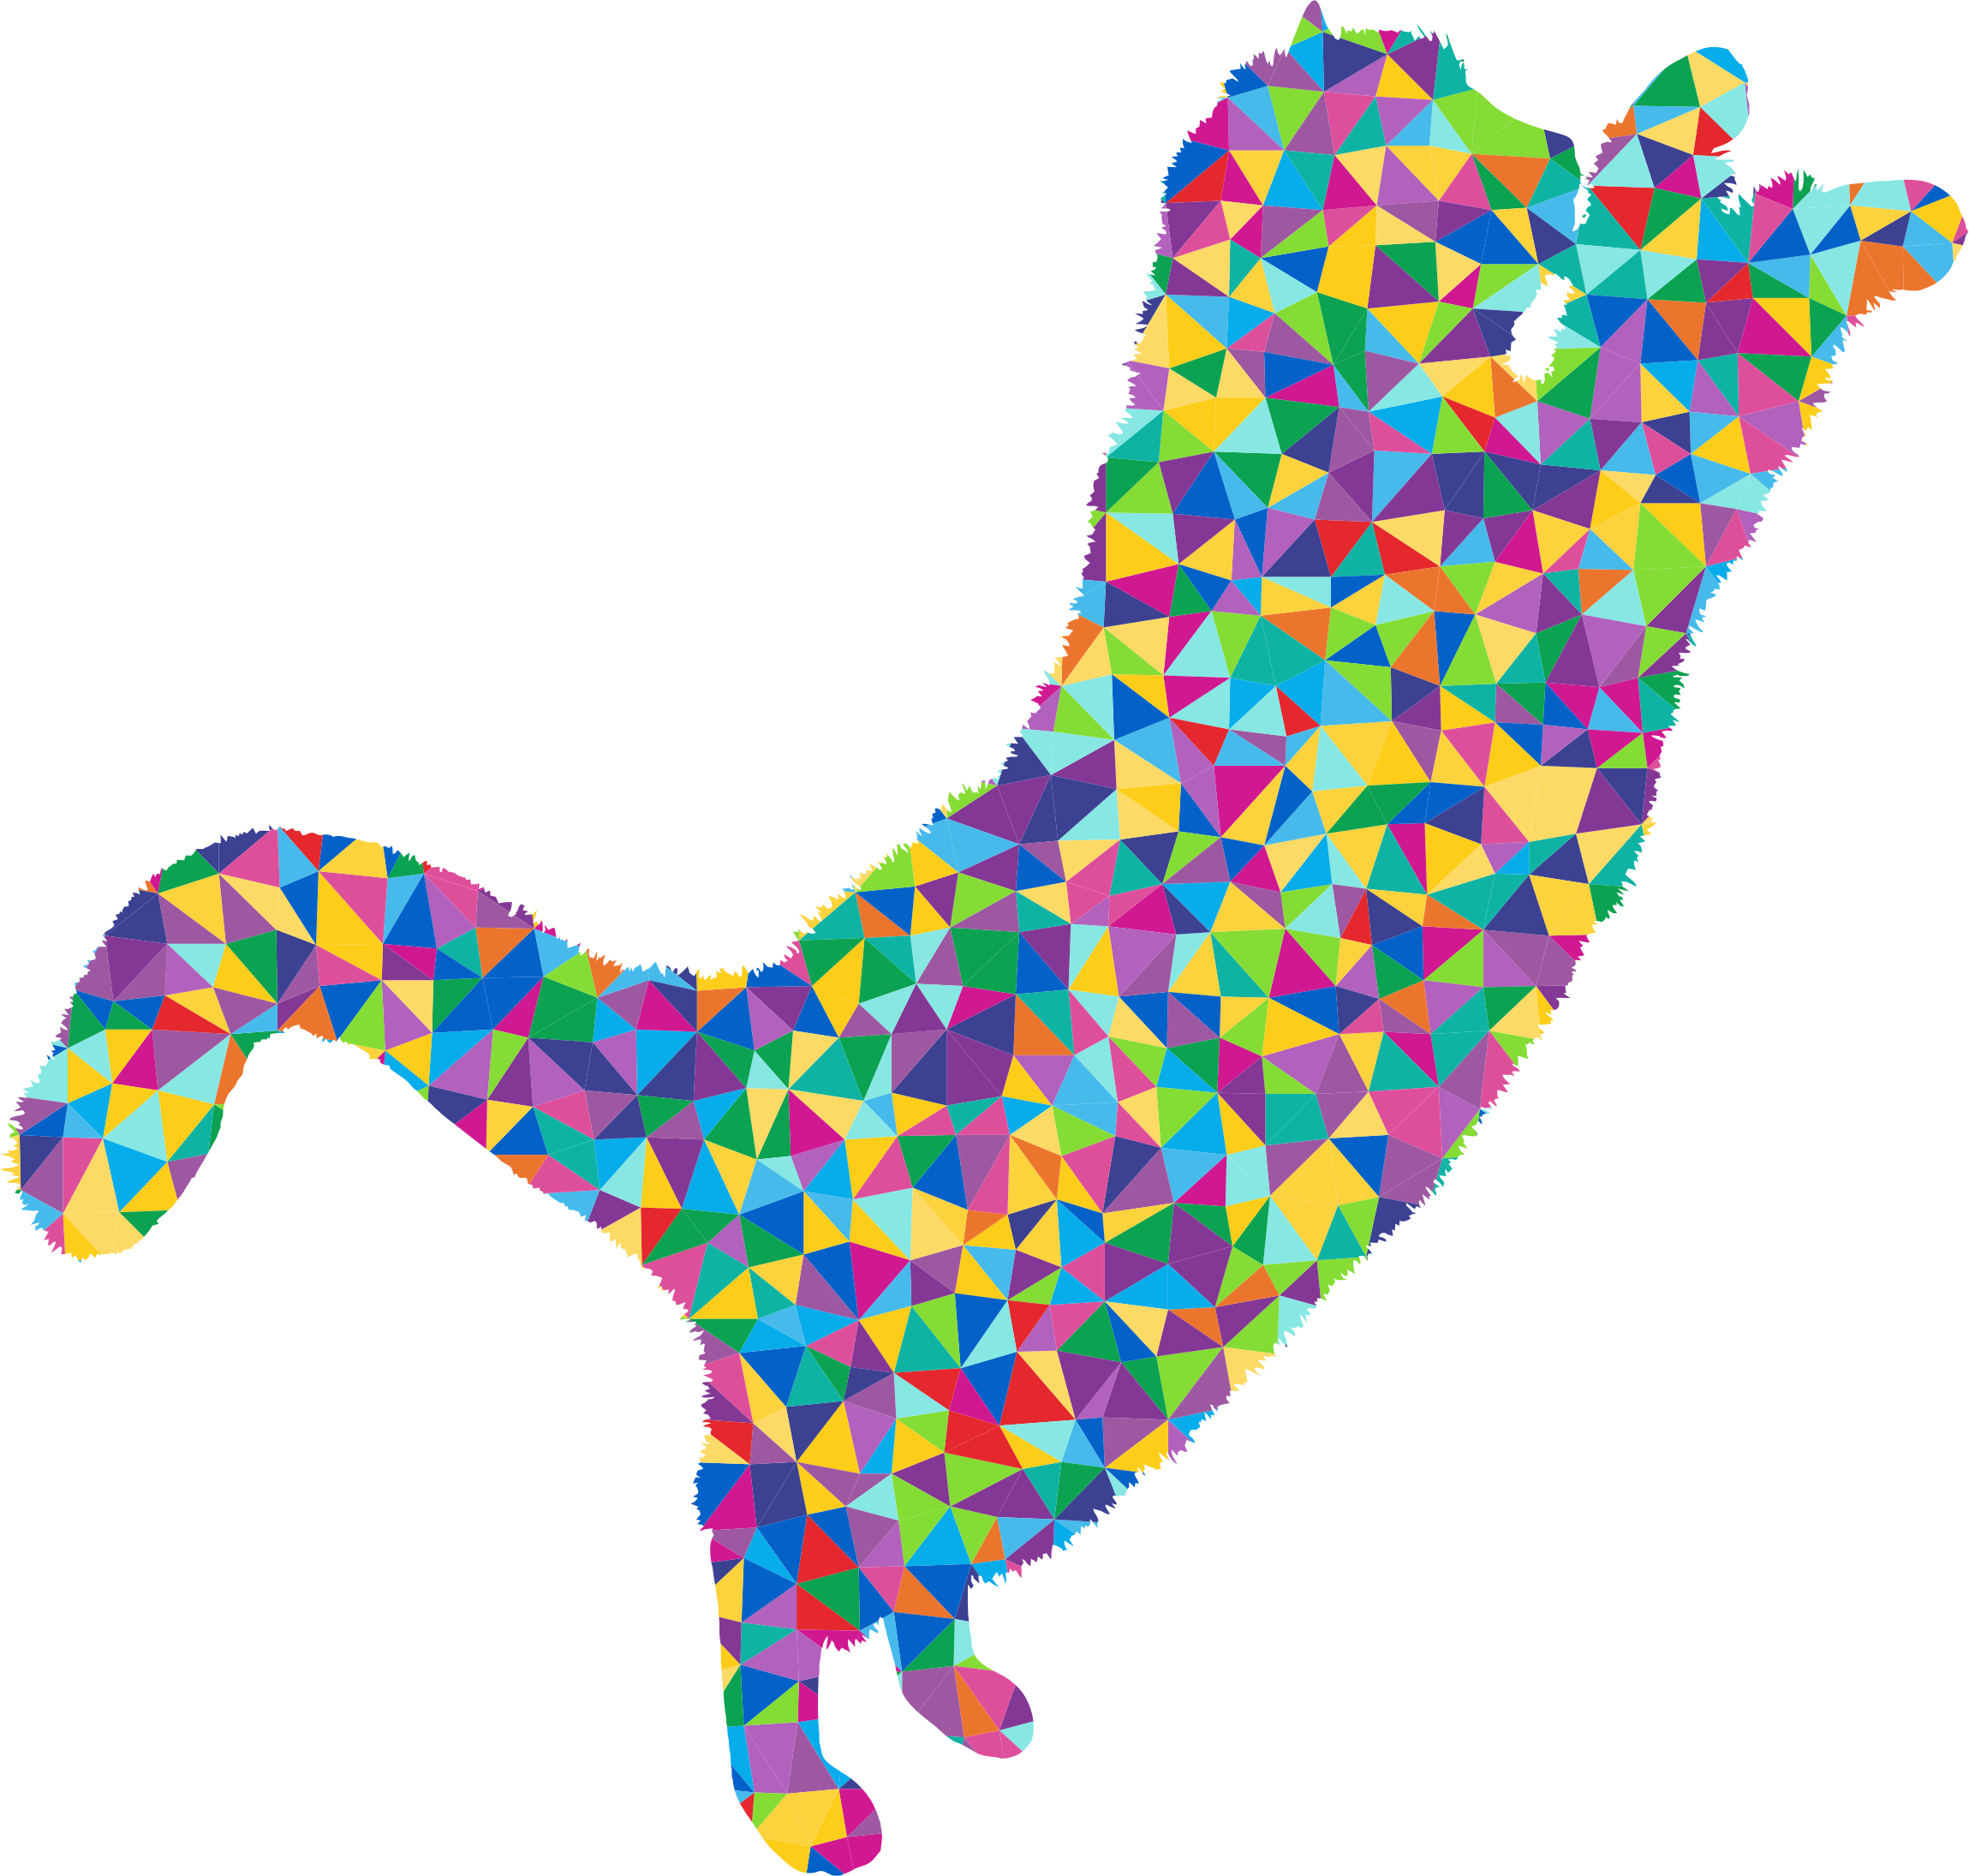 Low Poly Prismatic Fluffy Cat 2 Silhouette by GDJ